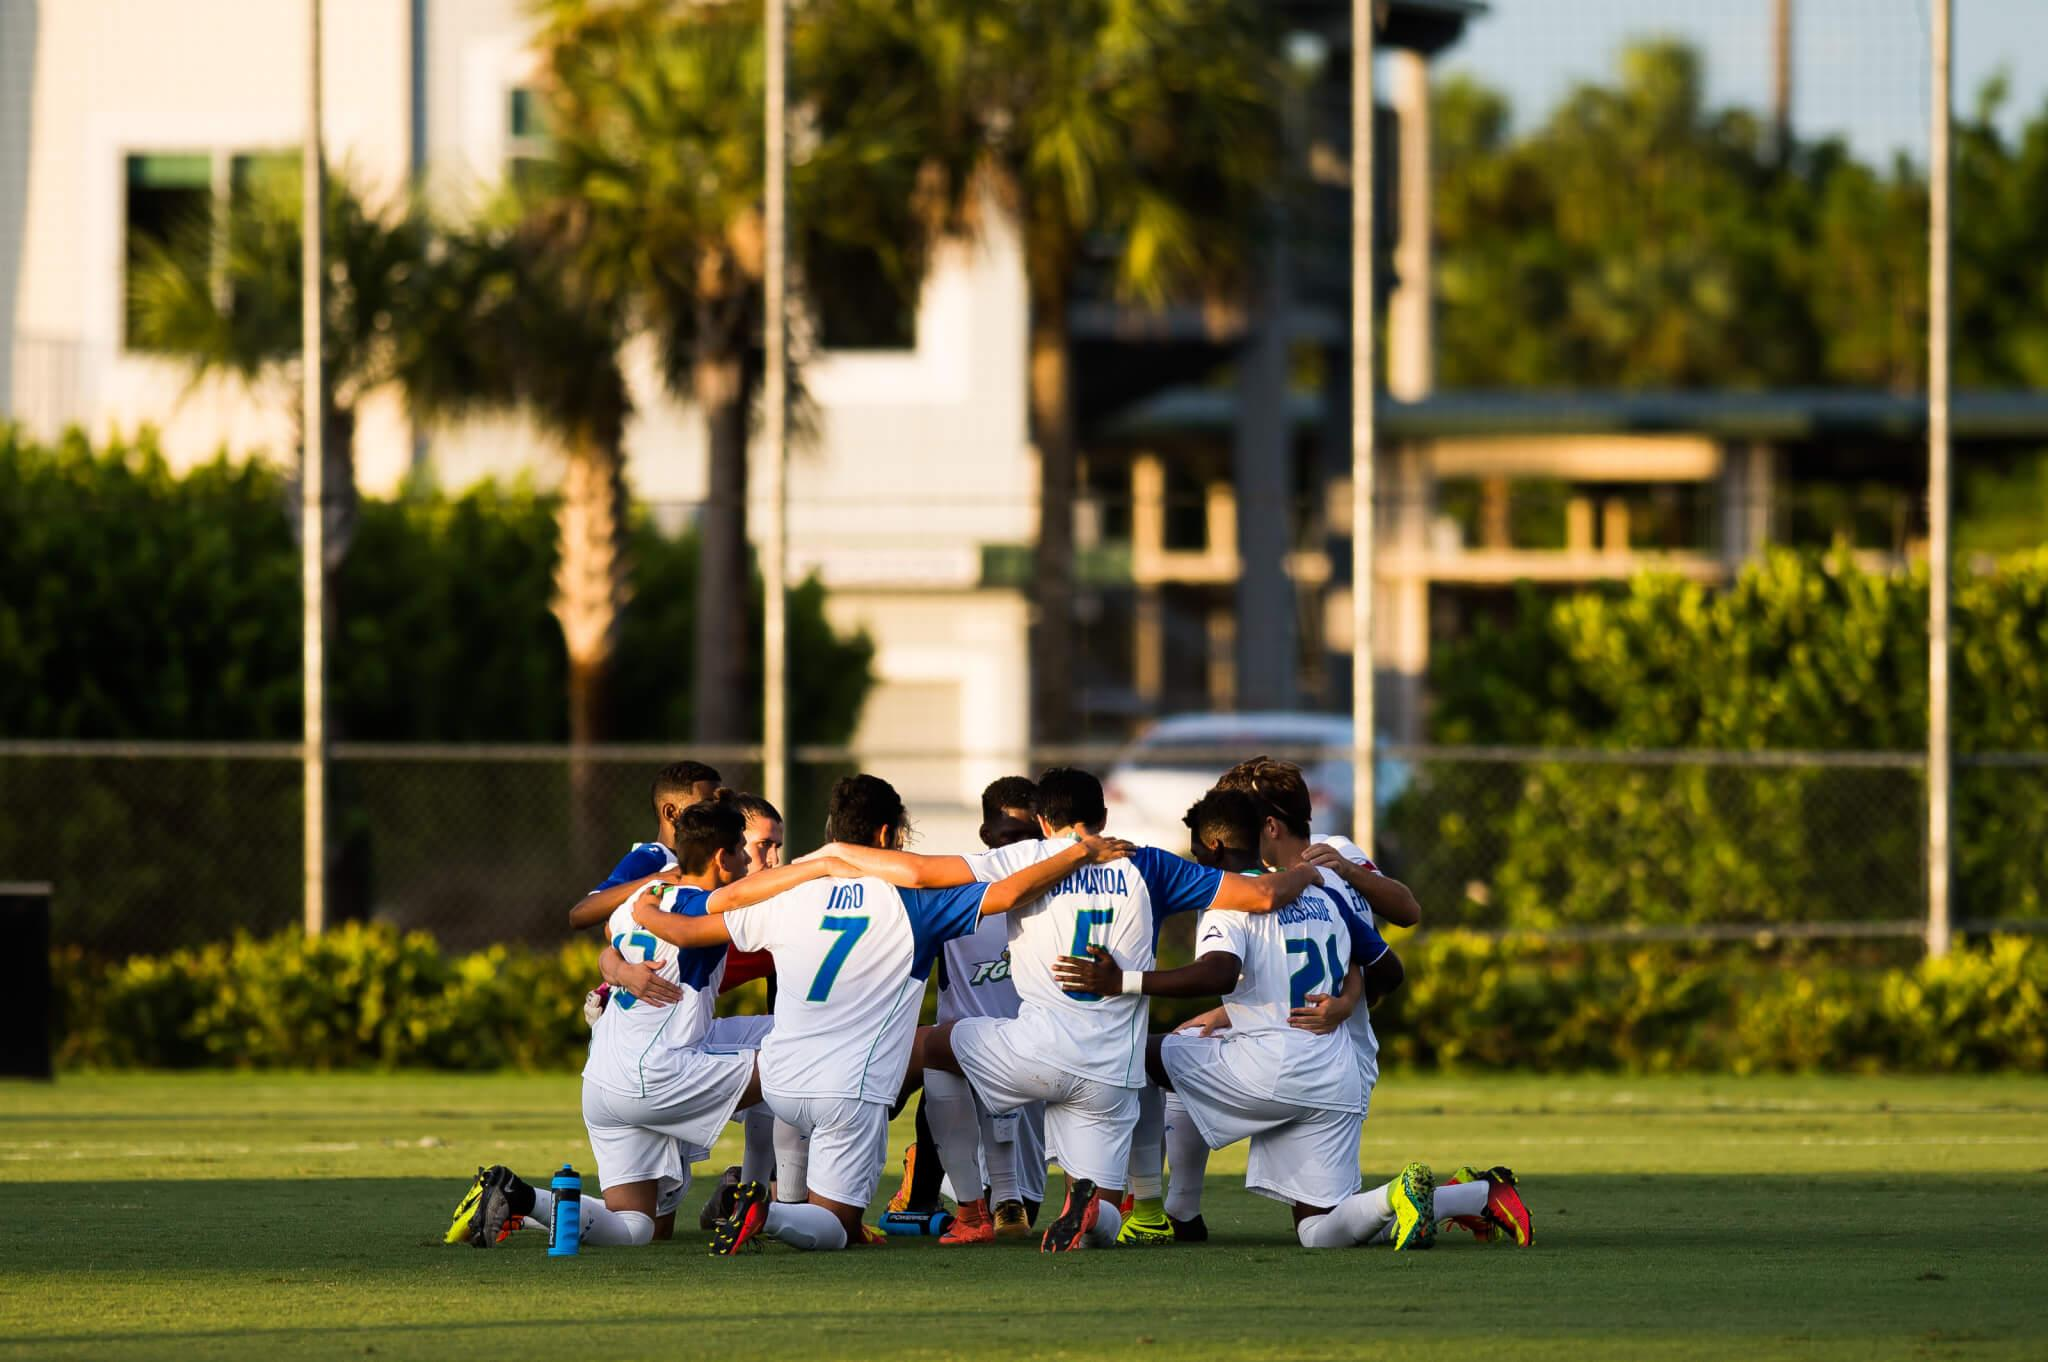 FGCU men's soccer earns fifth consecutive win with 5-1 victory over FAU